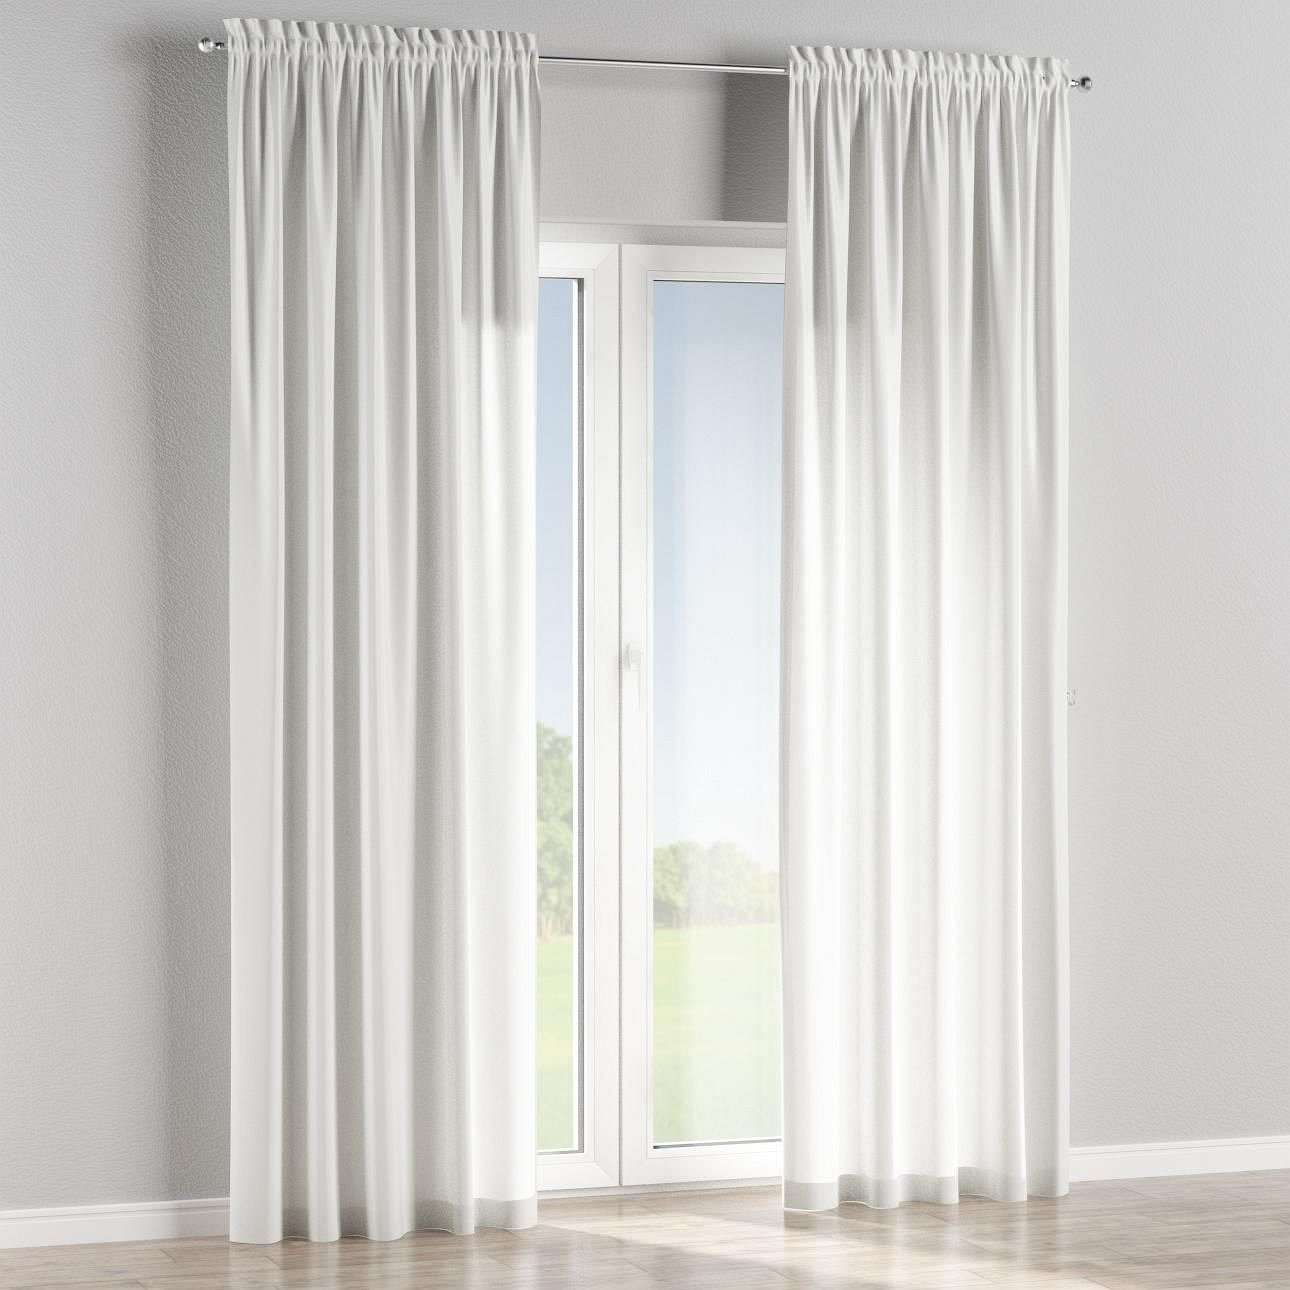 Slot and frill curtains in collection SALE, fabric: 137-26